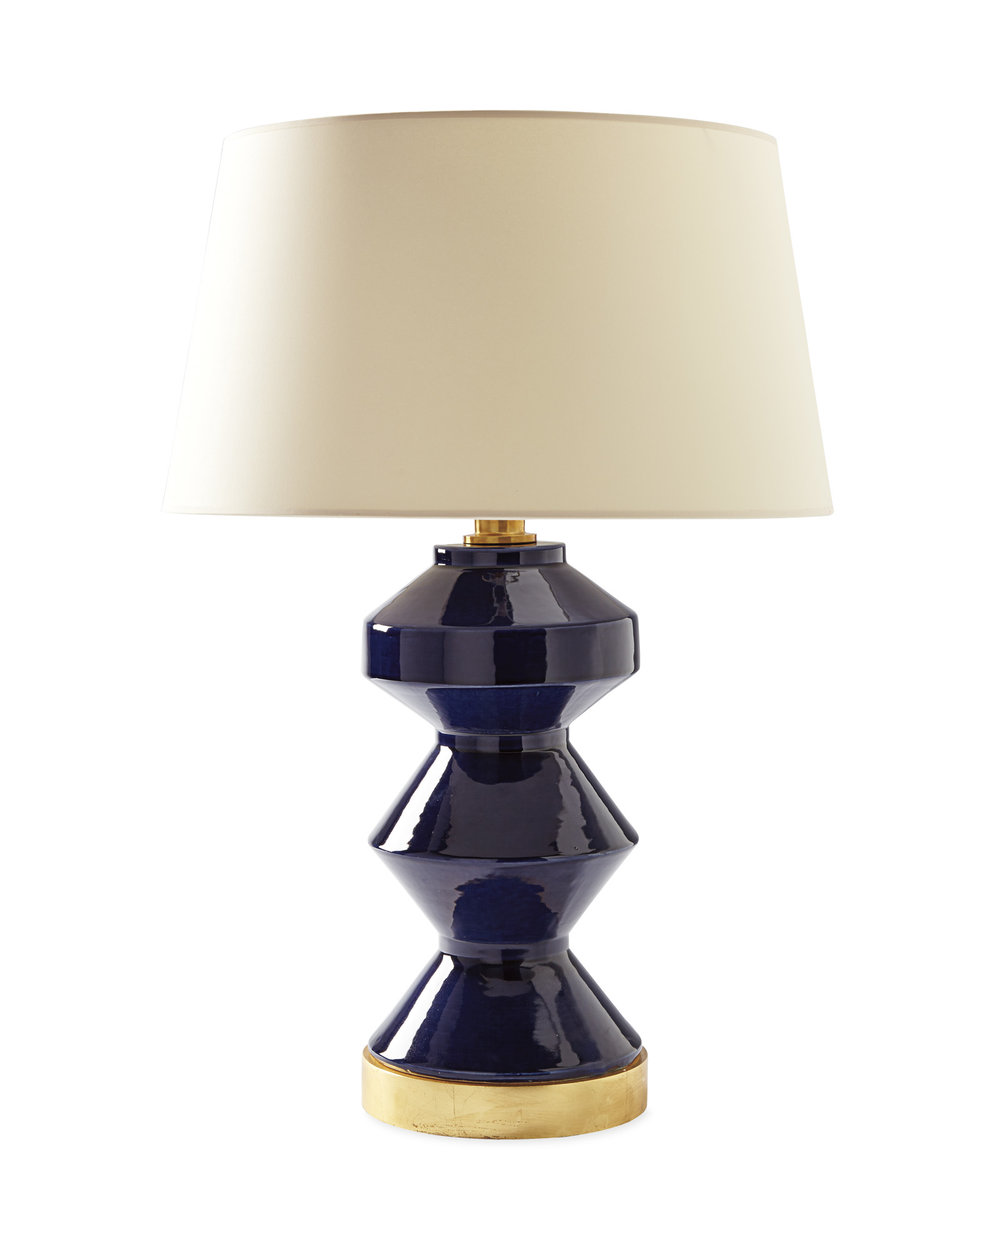 Lighting_Tablelamp_Myrtle_Navy_MV_Crop_SH.jpg